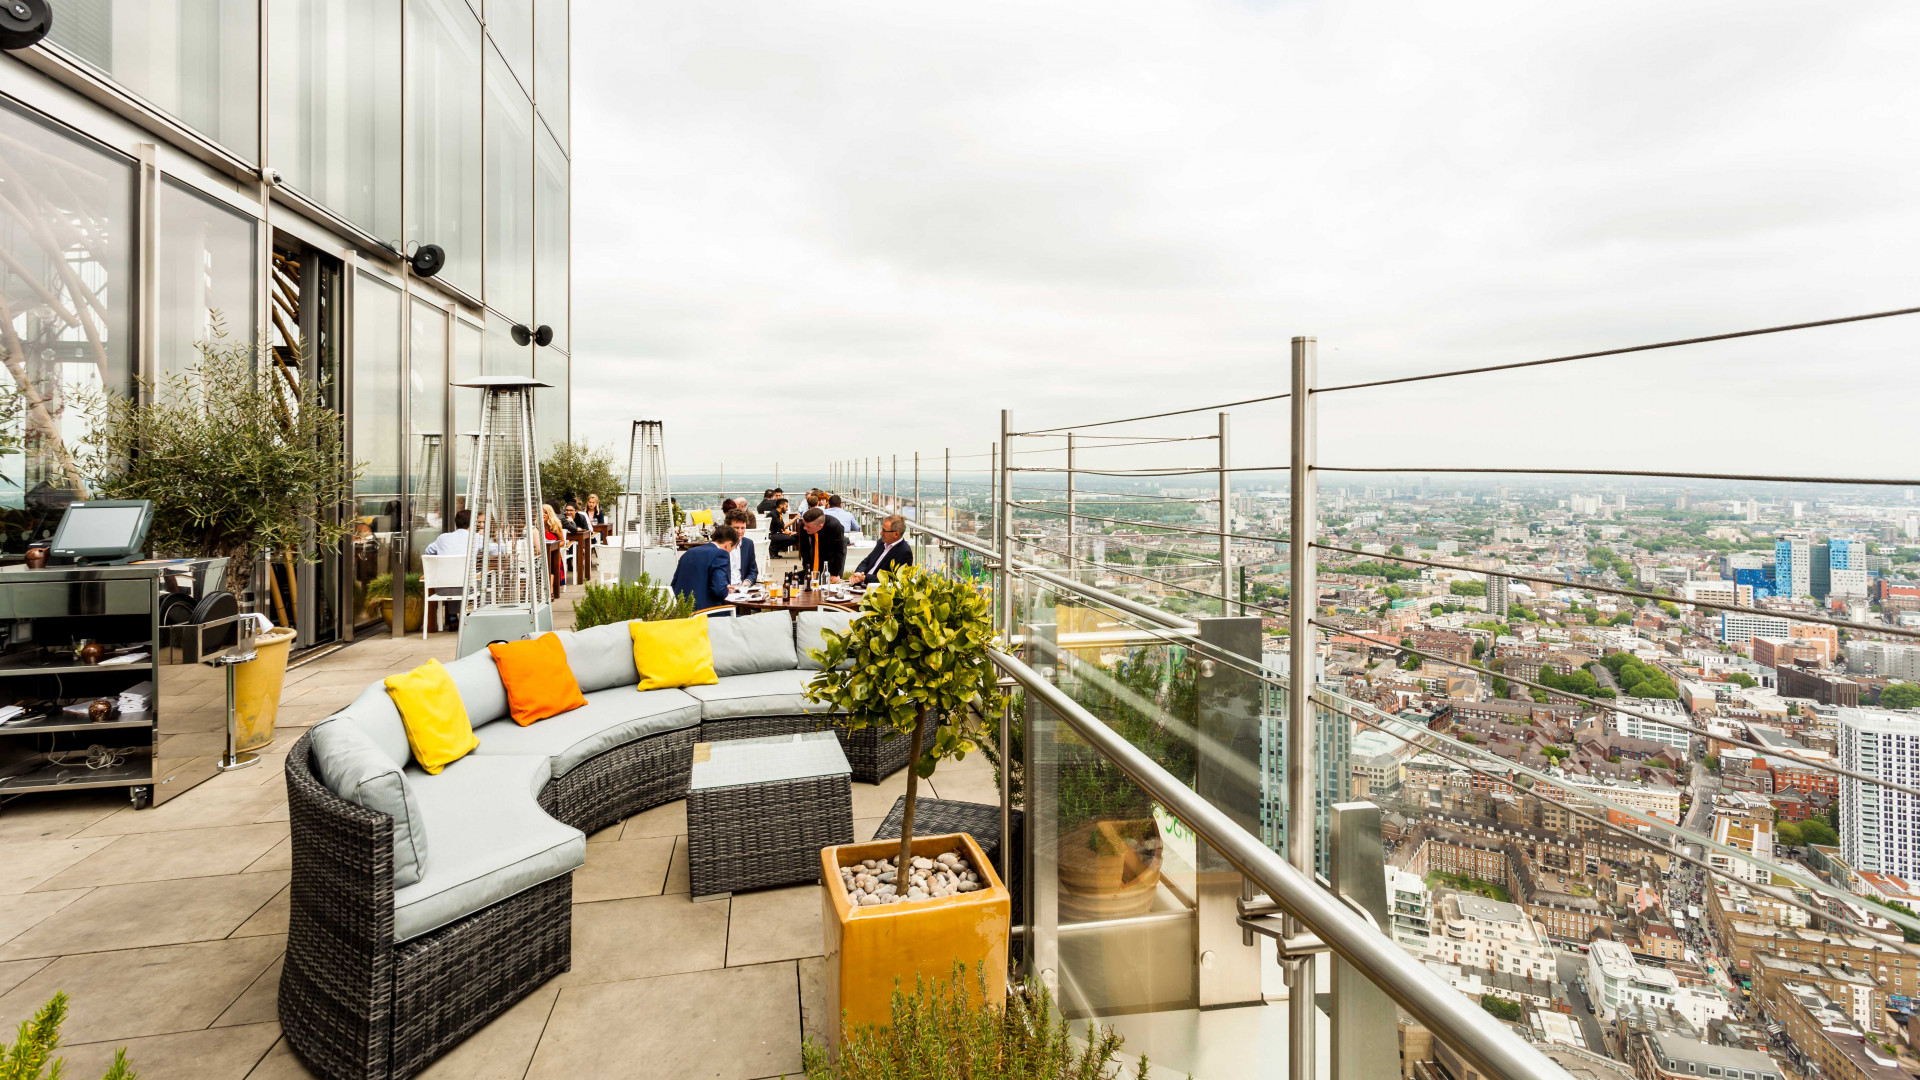 View from terrace at Sushisamba in London